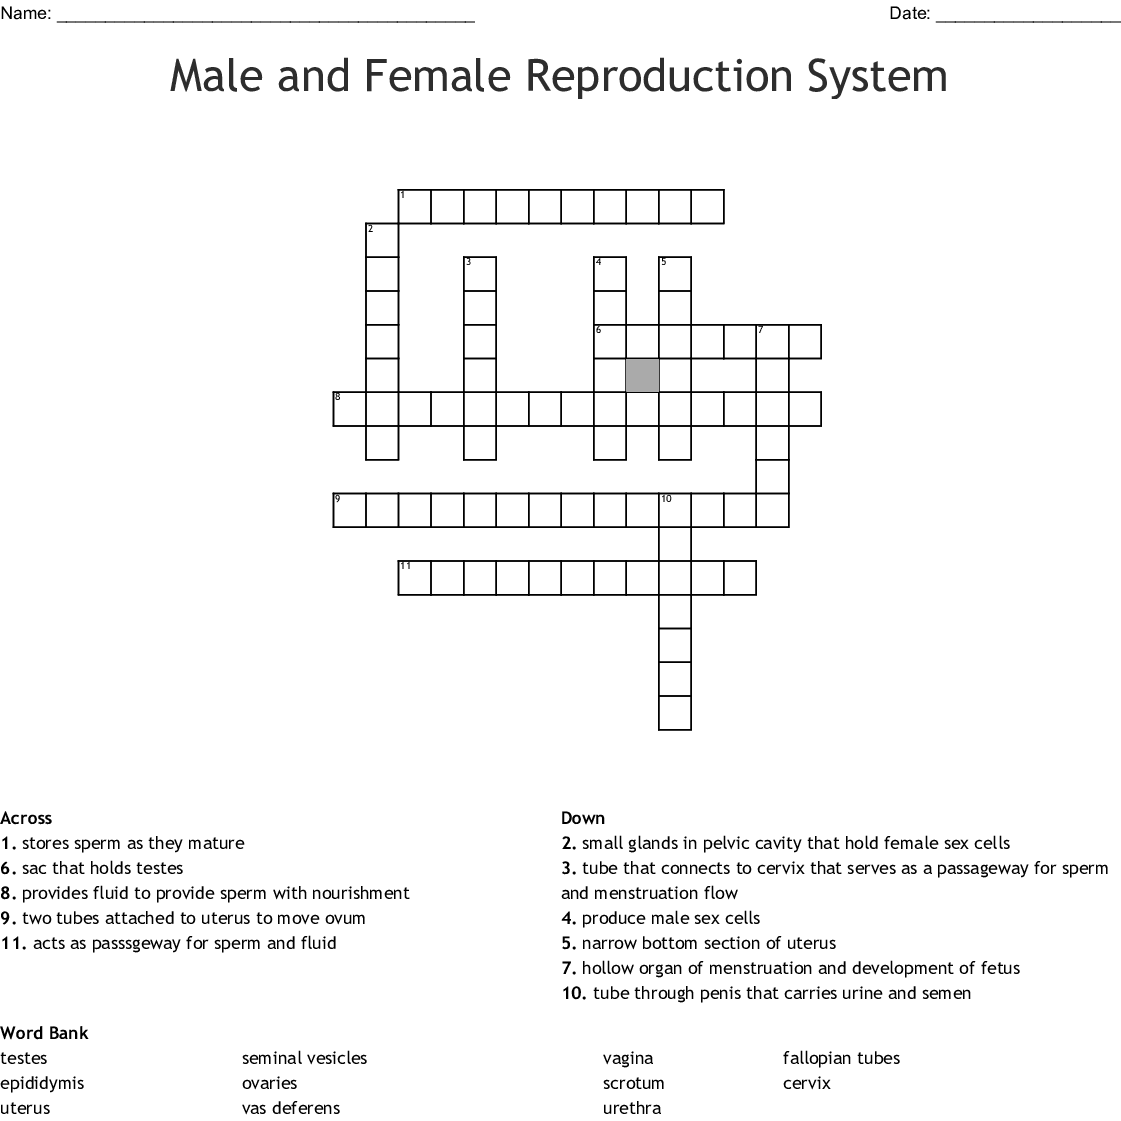 Male Reproductive System Worksheet Answer Key